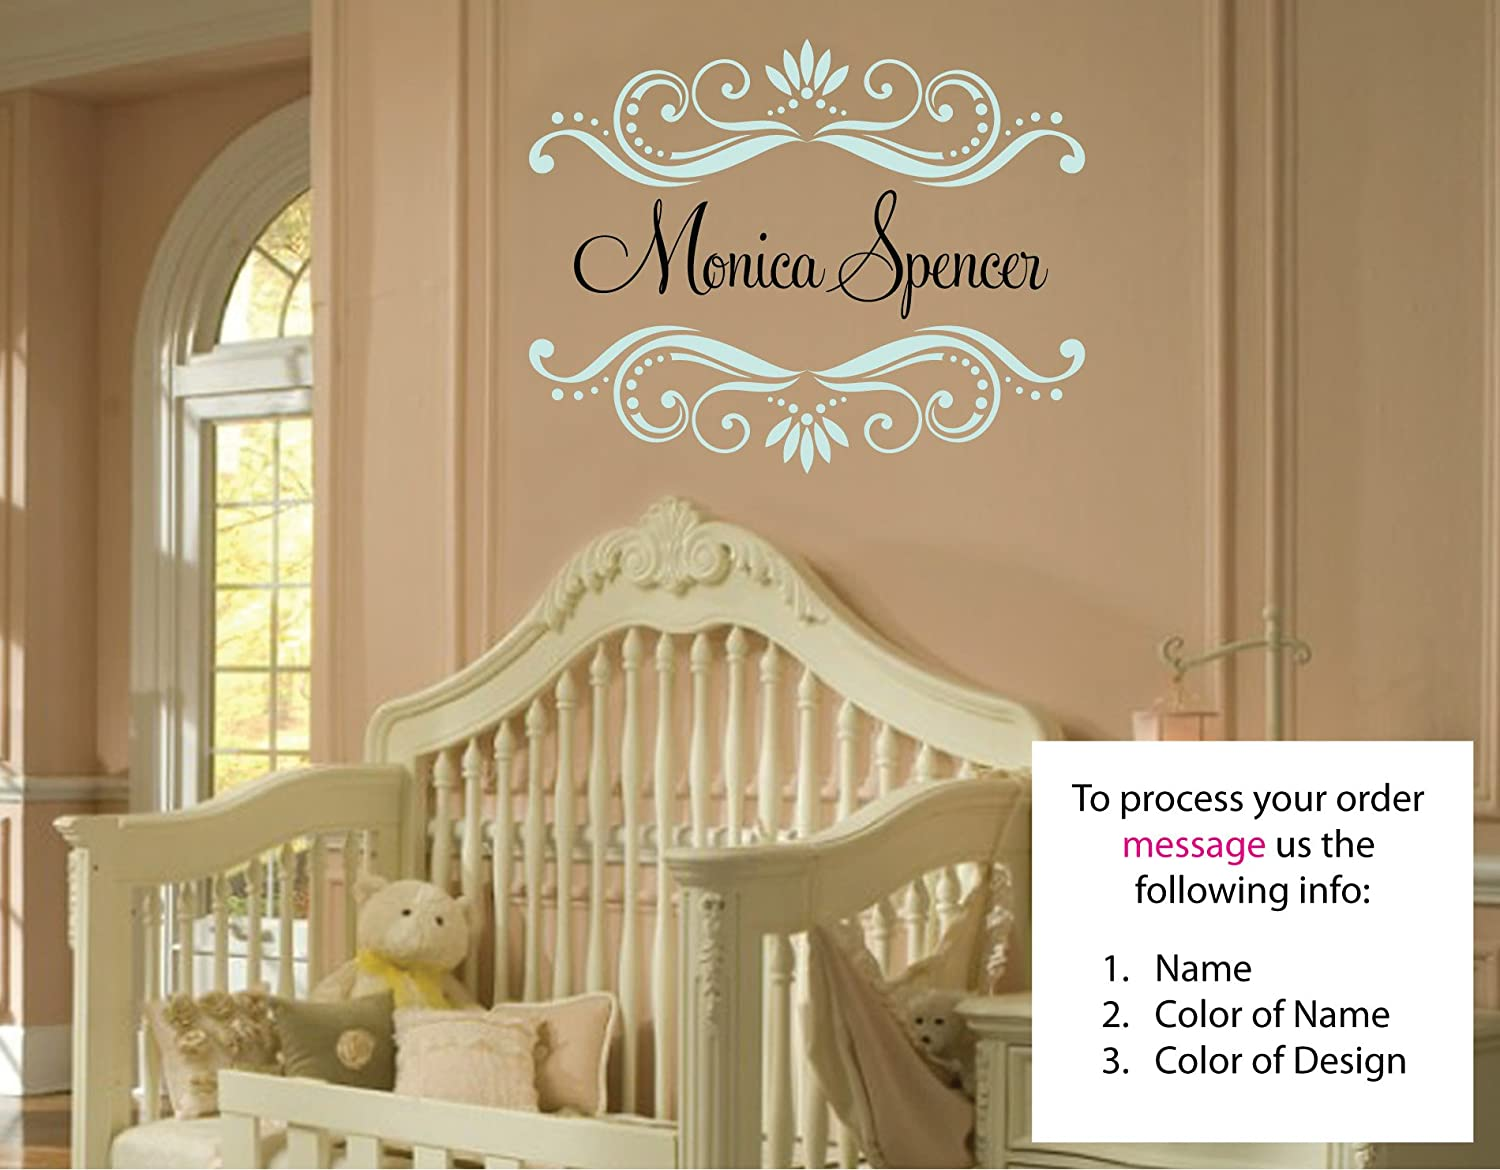 Amazon.com: Monica Spencer Wall Decal Childrens Personalized Name ...